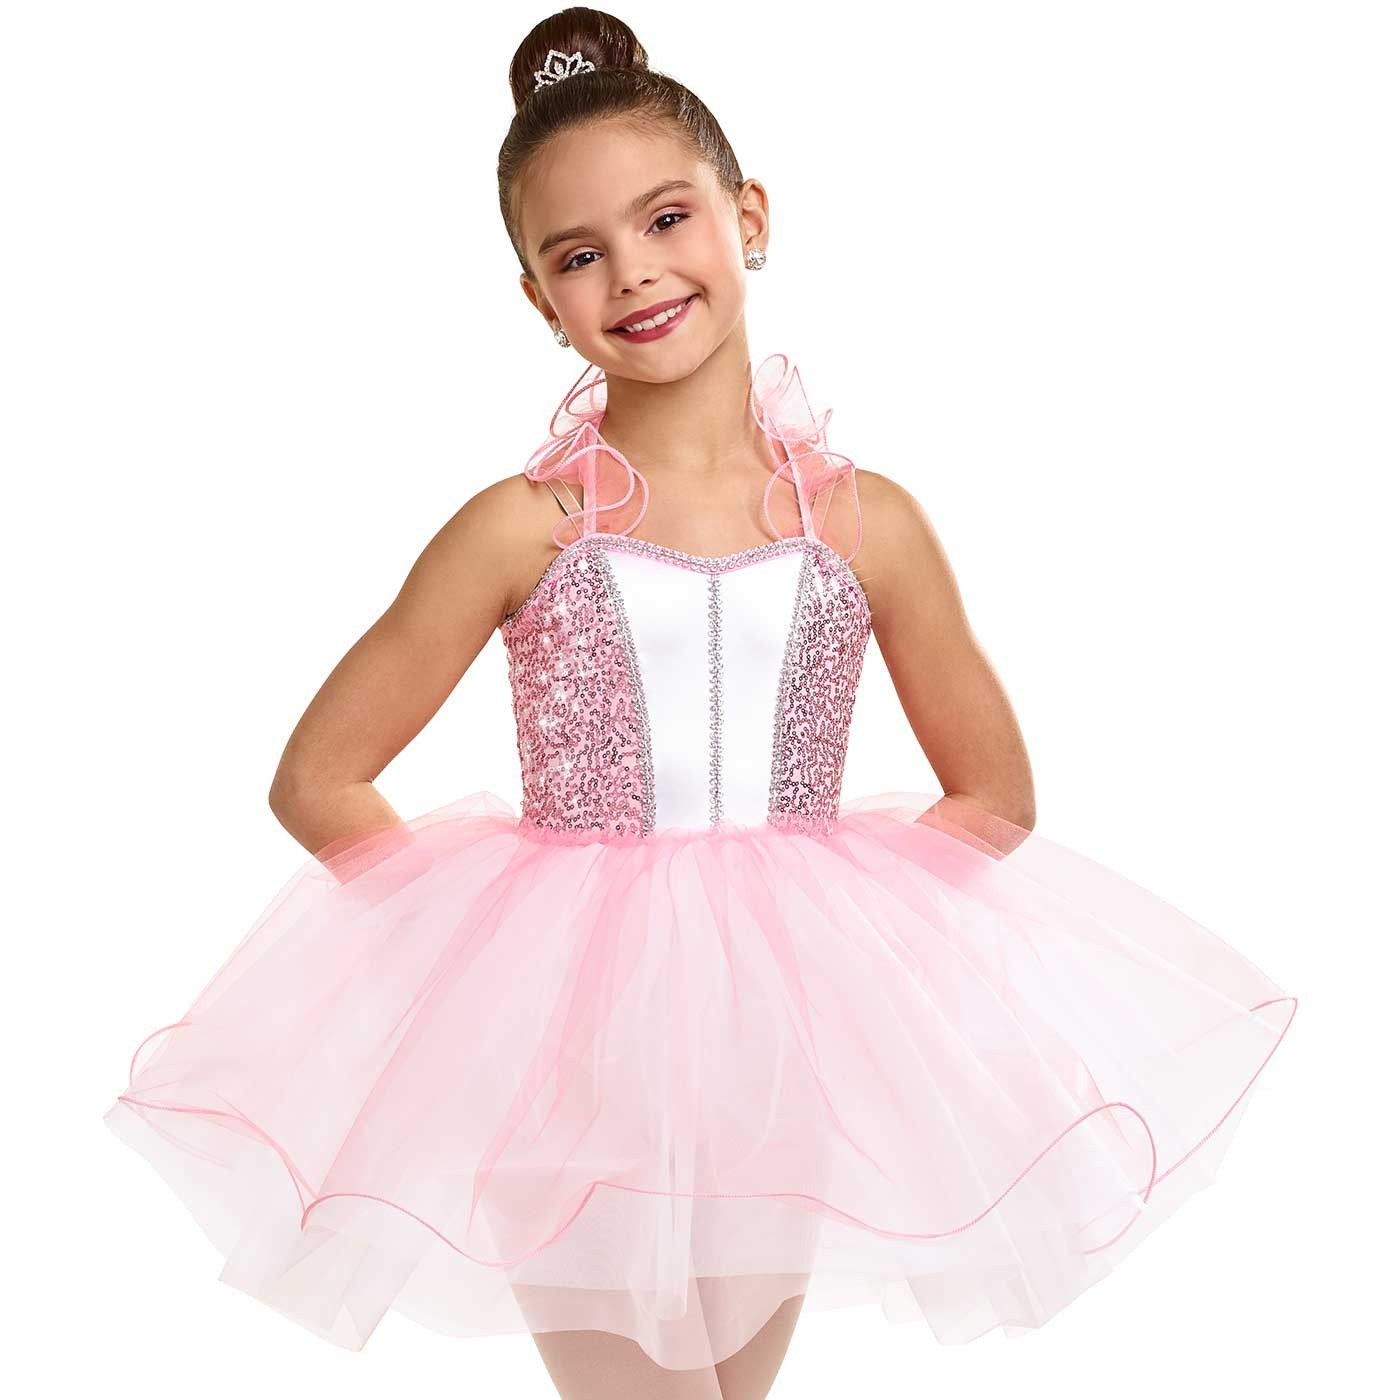 Image result for princess debut curtain call costumes